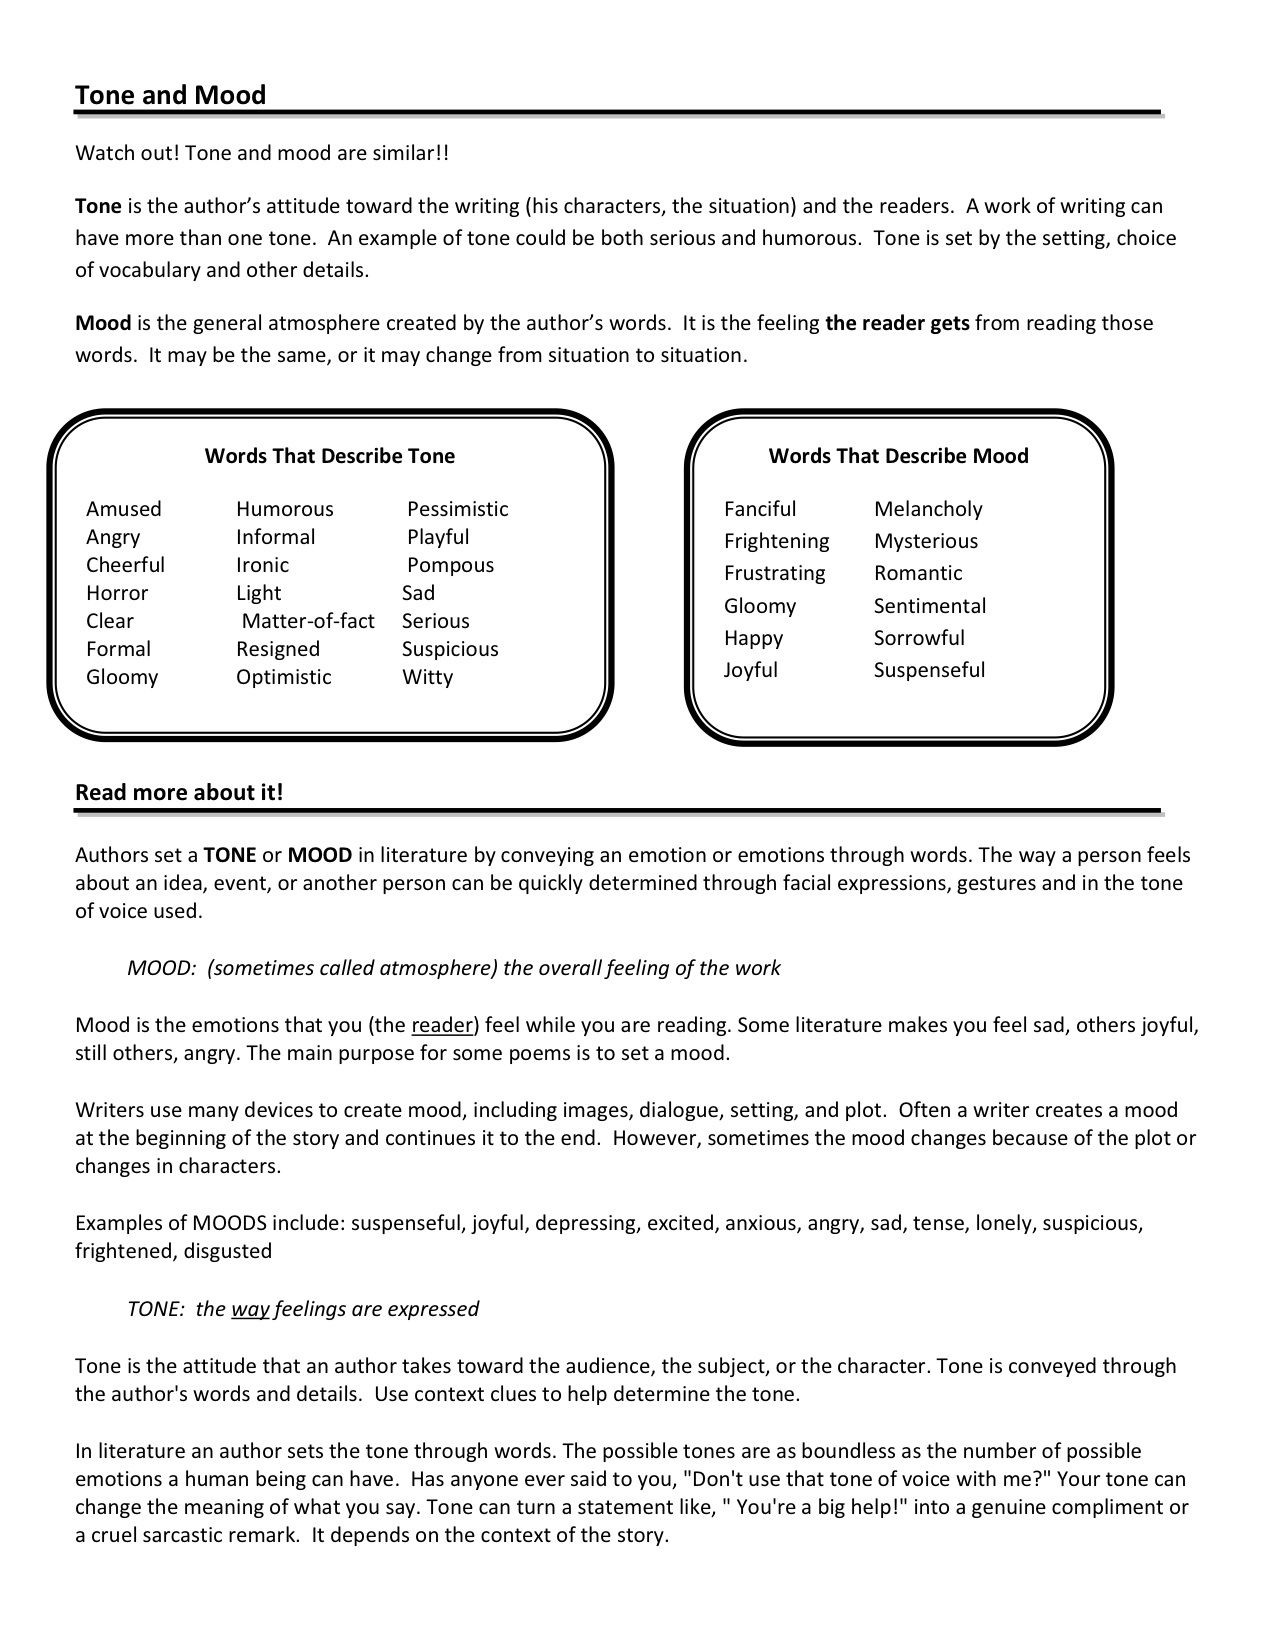 Tone And Mood Worksheets Google Search Teachinglibrary